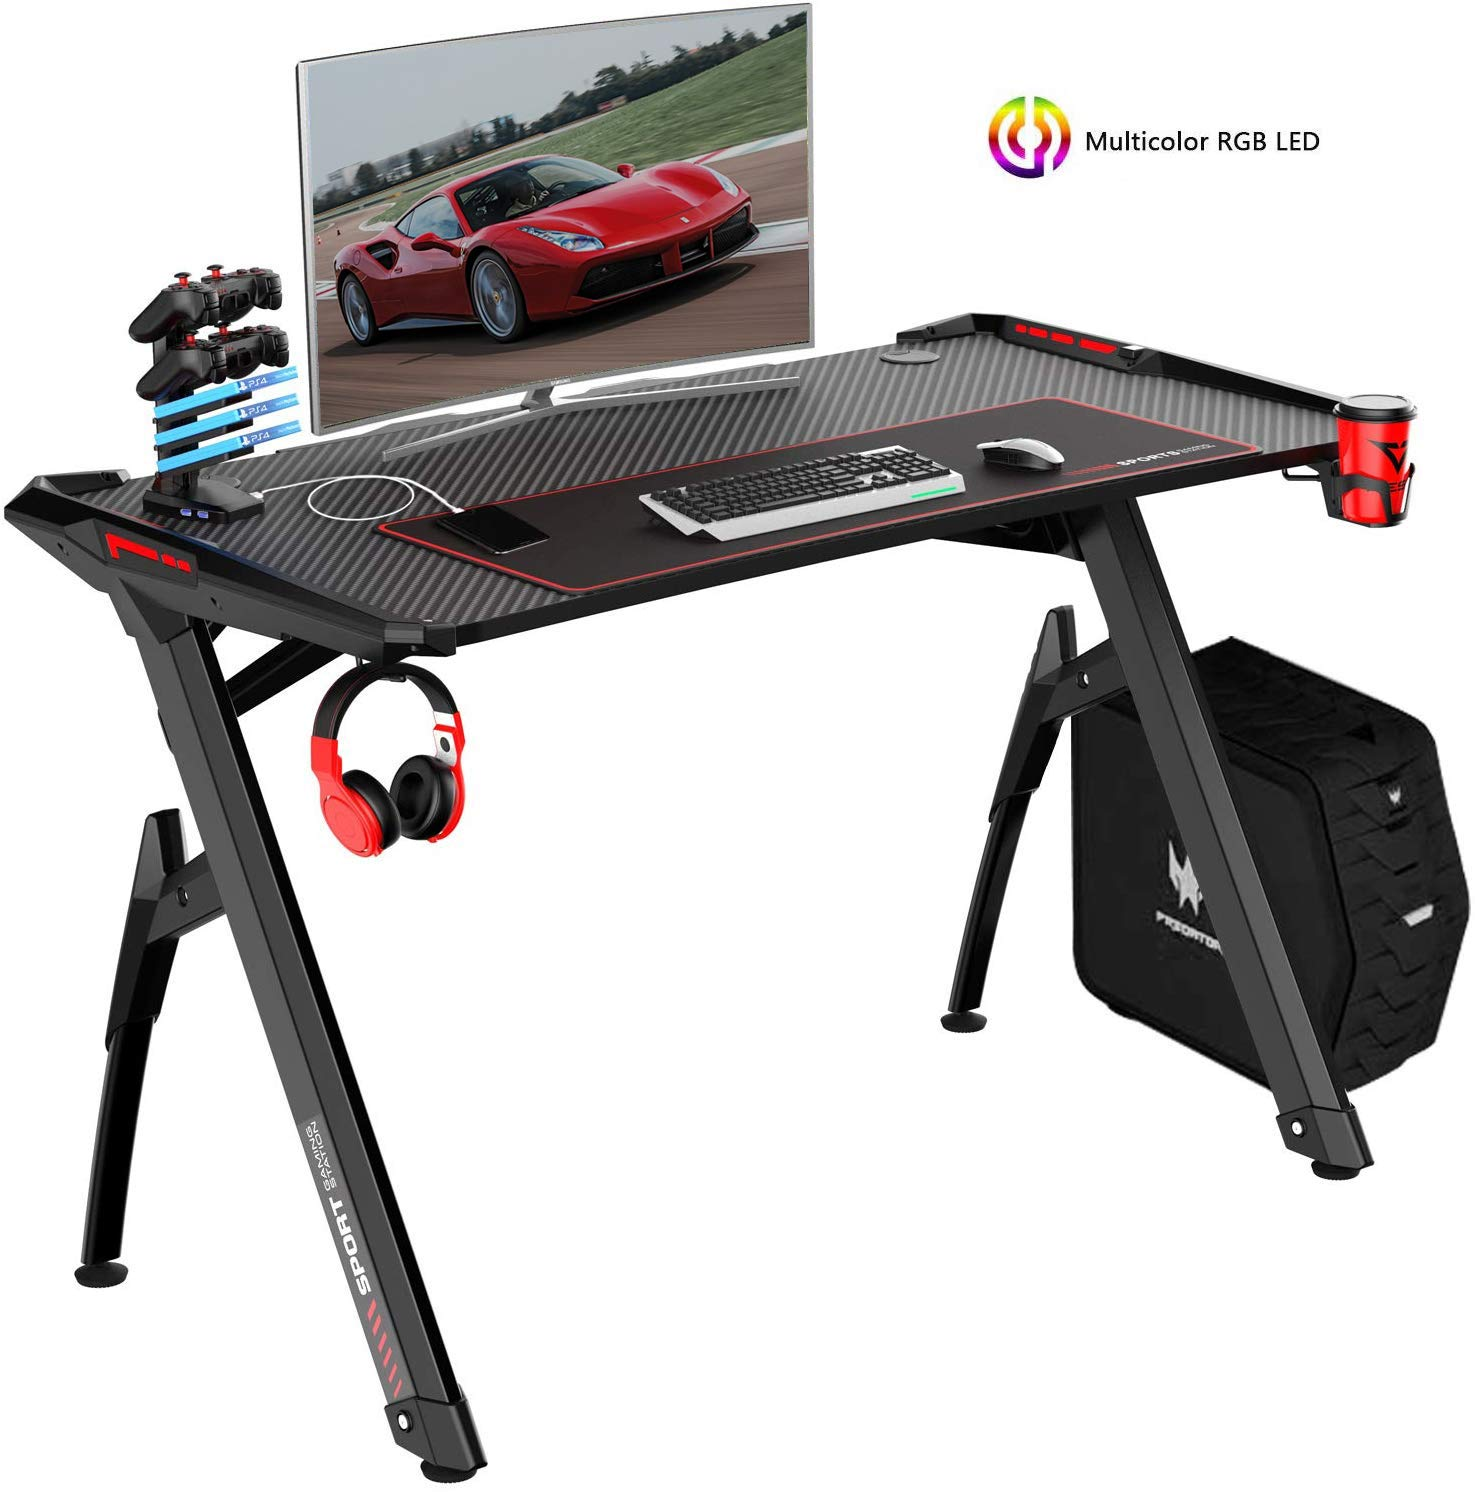 VIT 47 Inch Ergonomic Gaming Desk with RGB LED Lights, Y-Shaped Office PC Computer Desk with Large Mouse Pad, Gamer Tables Pro with USB Gaming Handle Rack, Stand Cup Holder Headphone Hook 47 in BLK